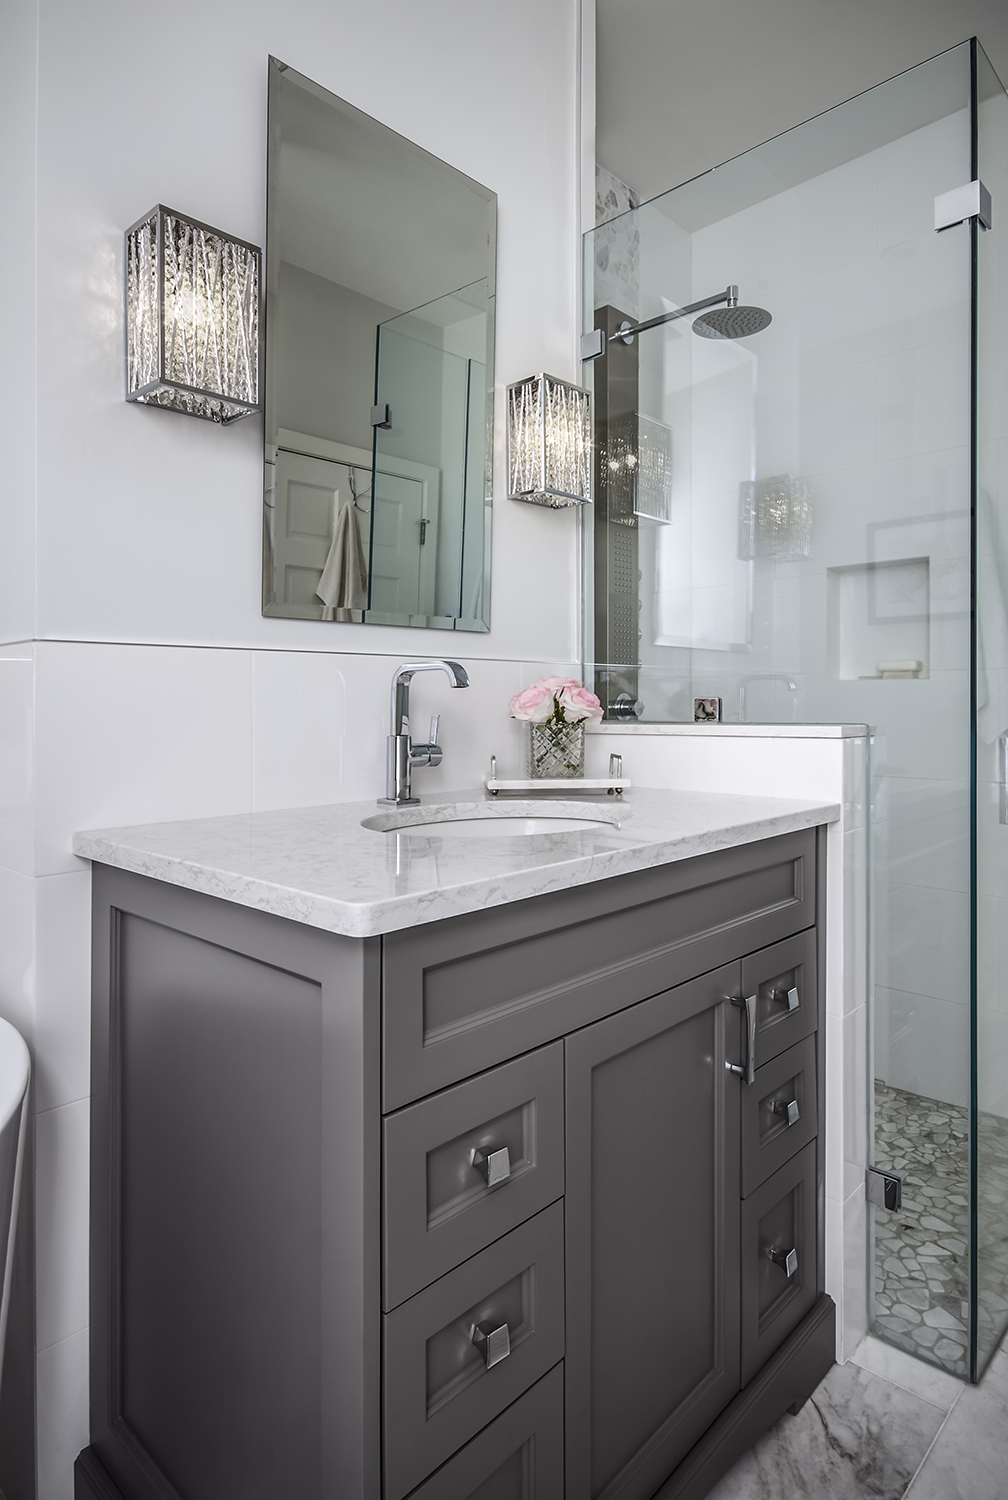 Pretty little Bathroom in Greys and Whites